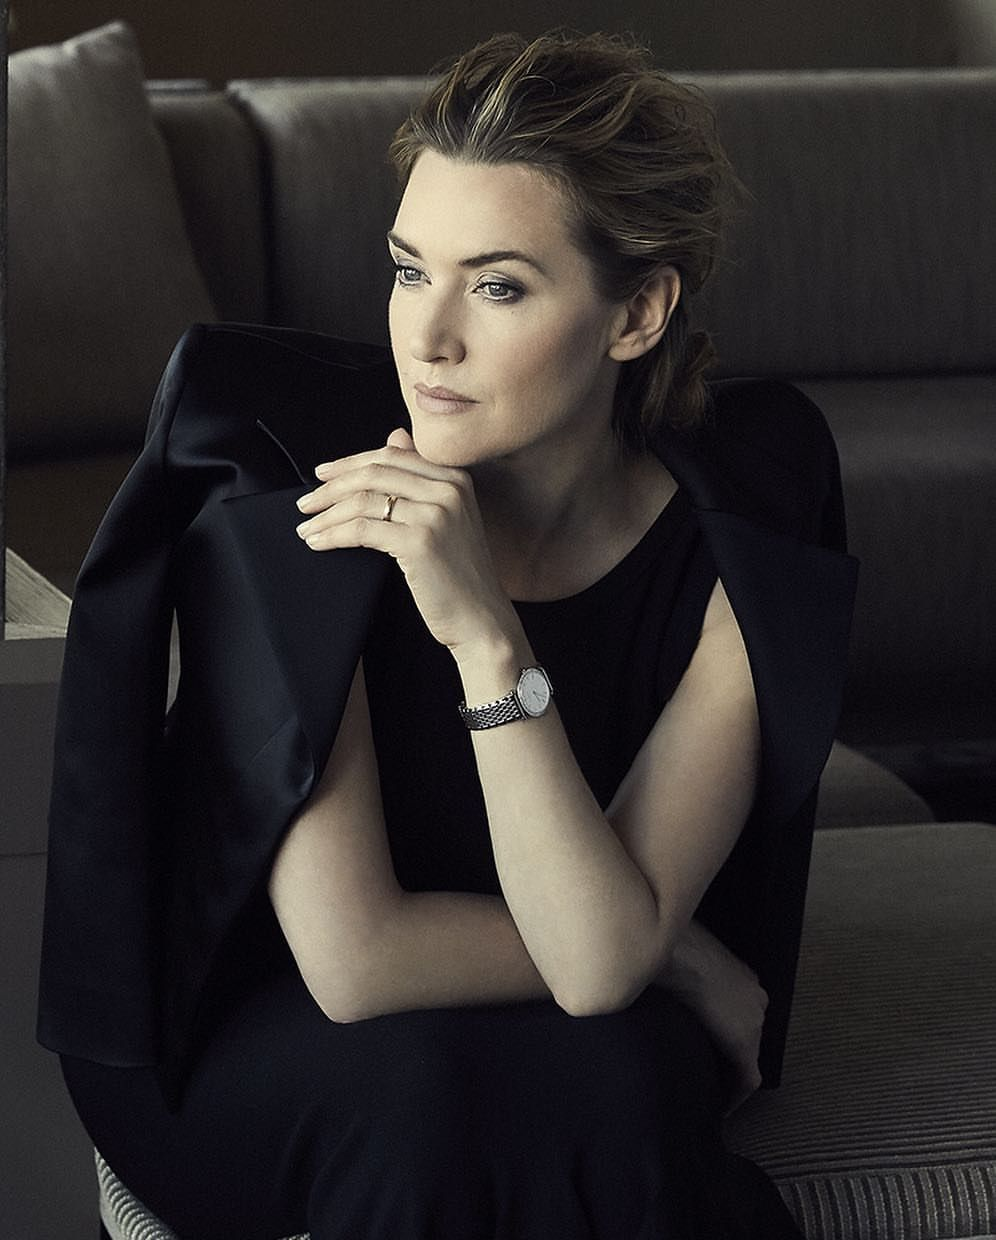 Love Portrait Photography Women Kate Winslet Headshots Women